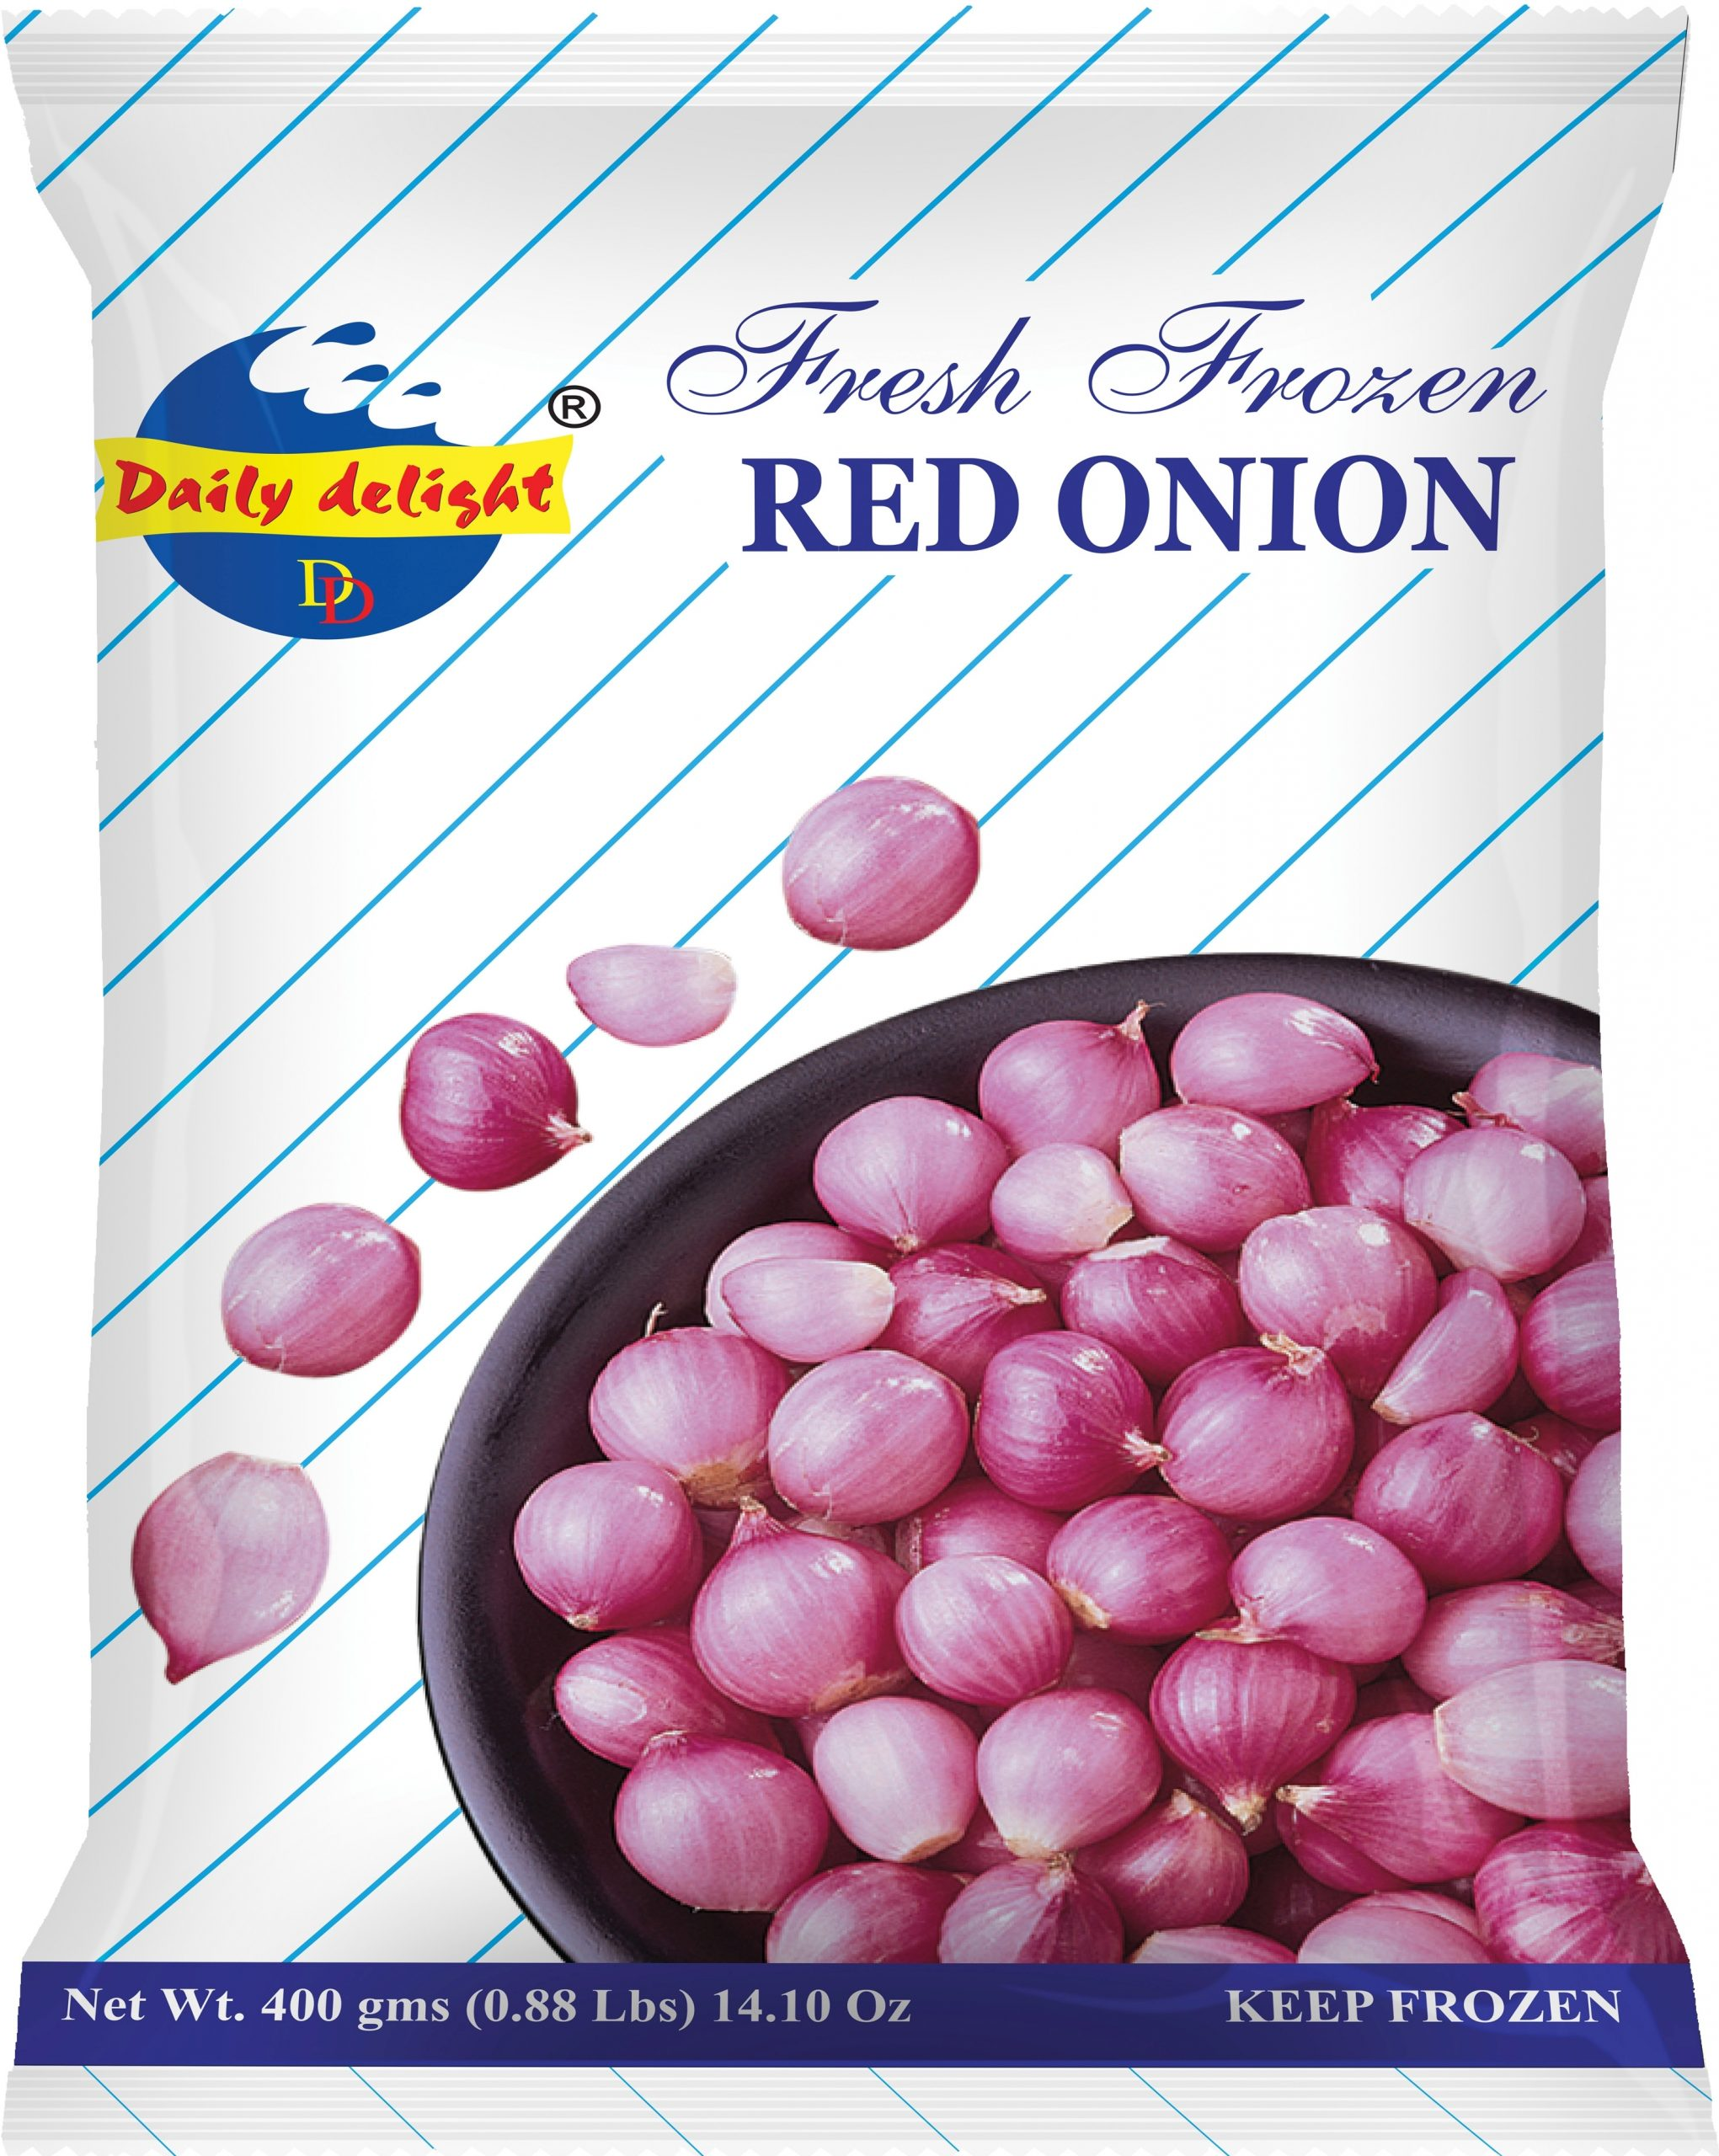 Daily Delight Red Onion